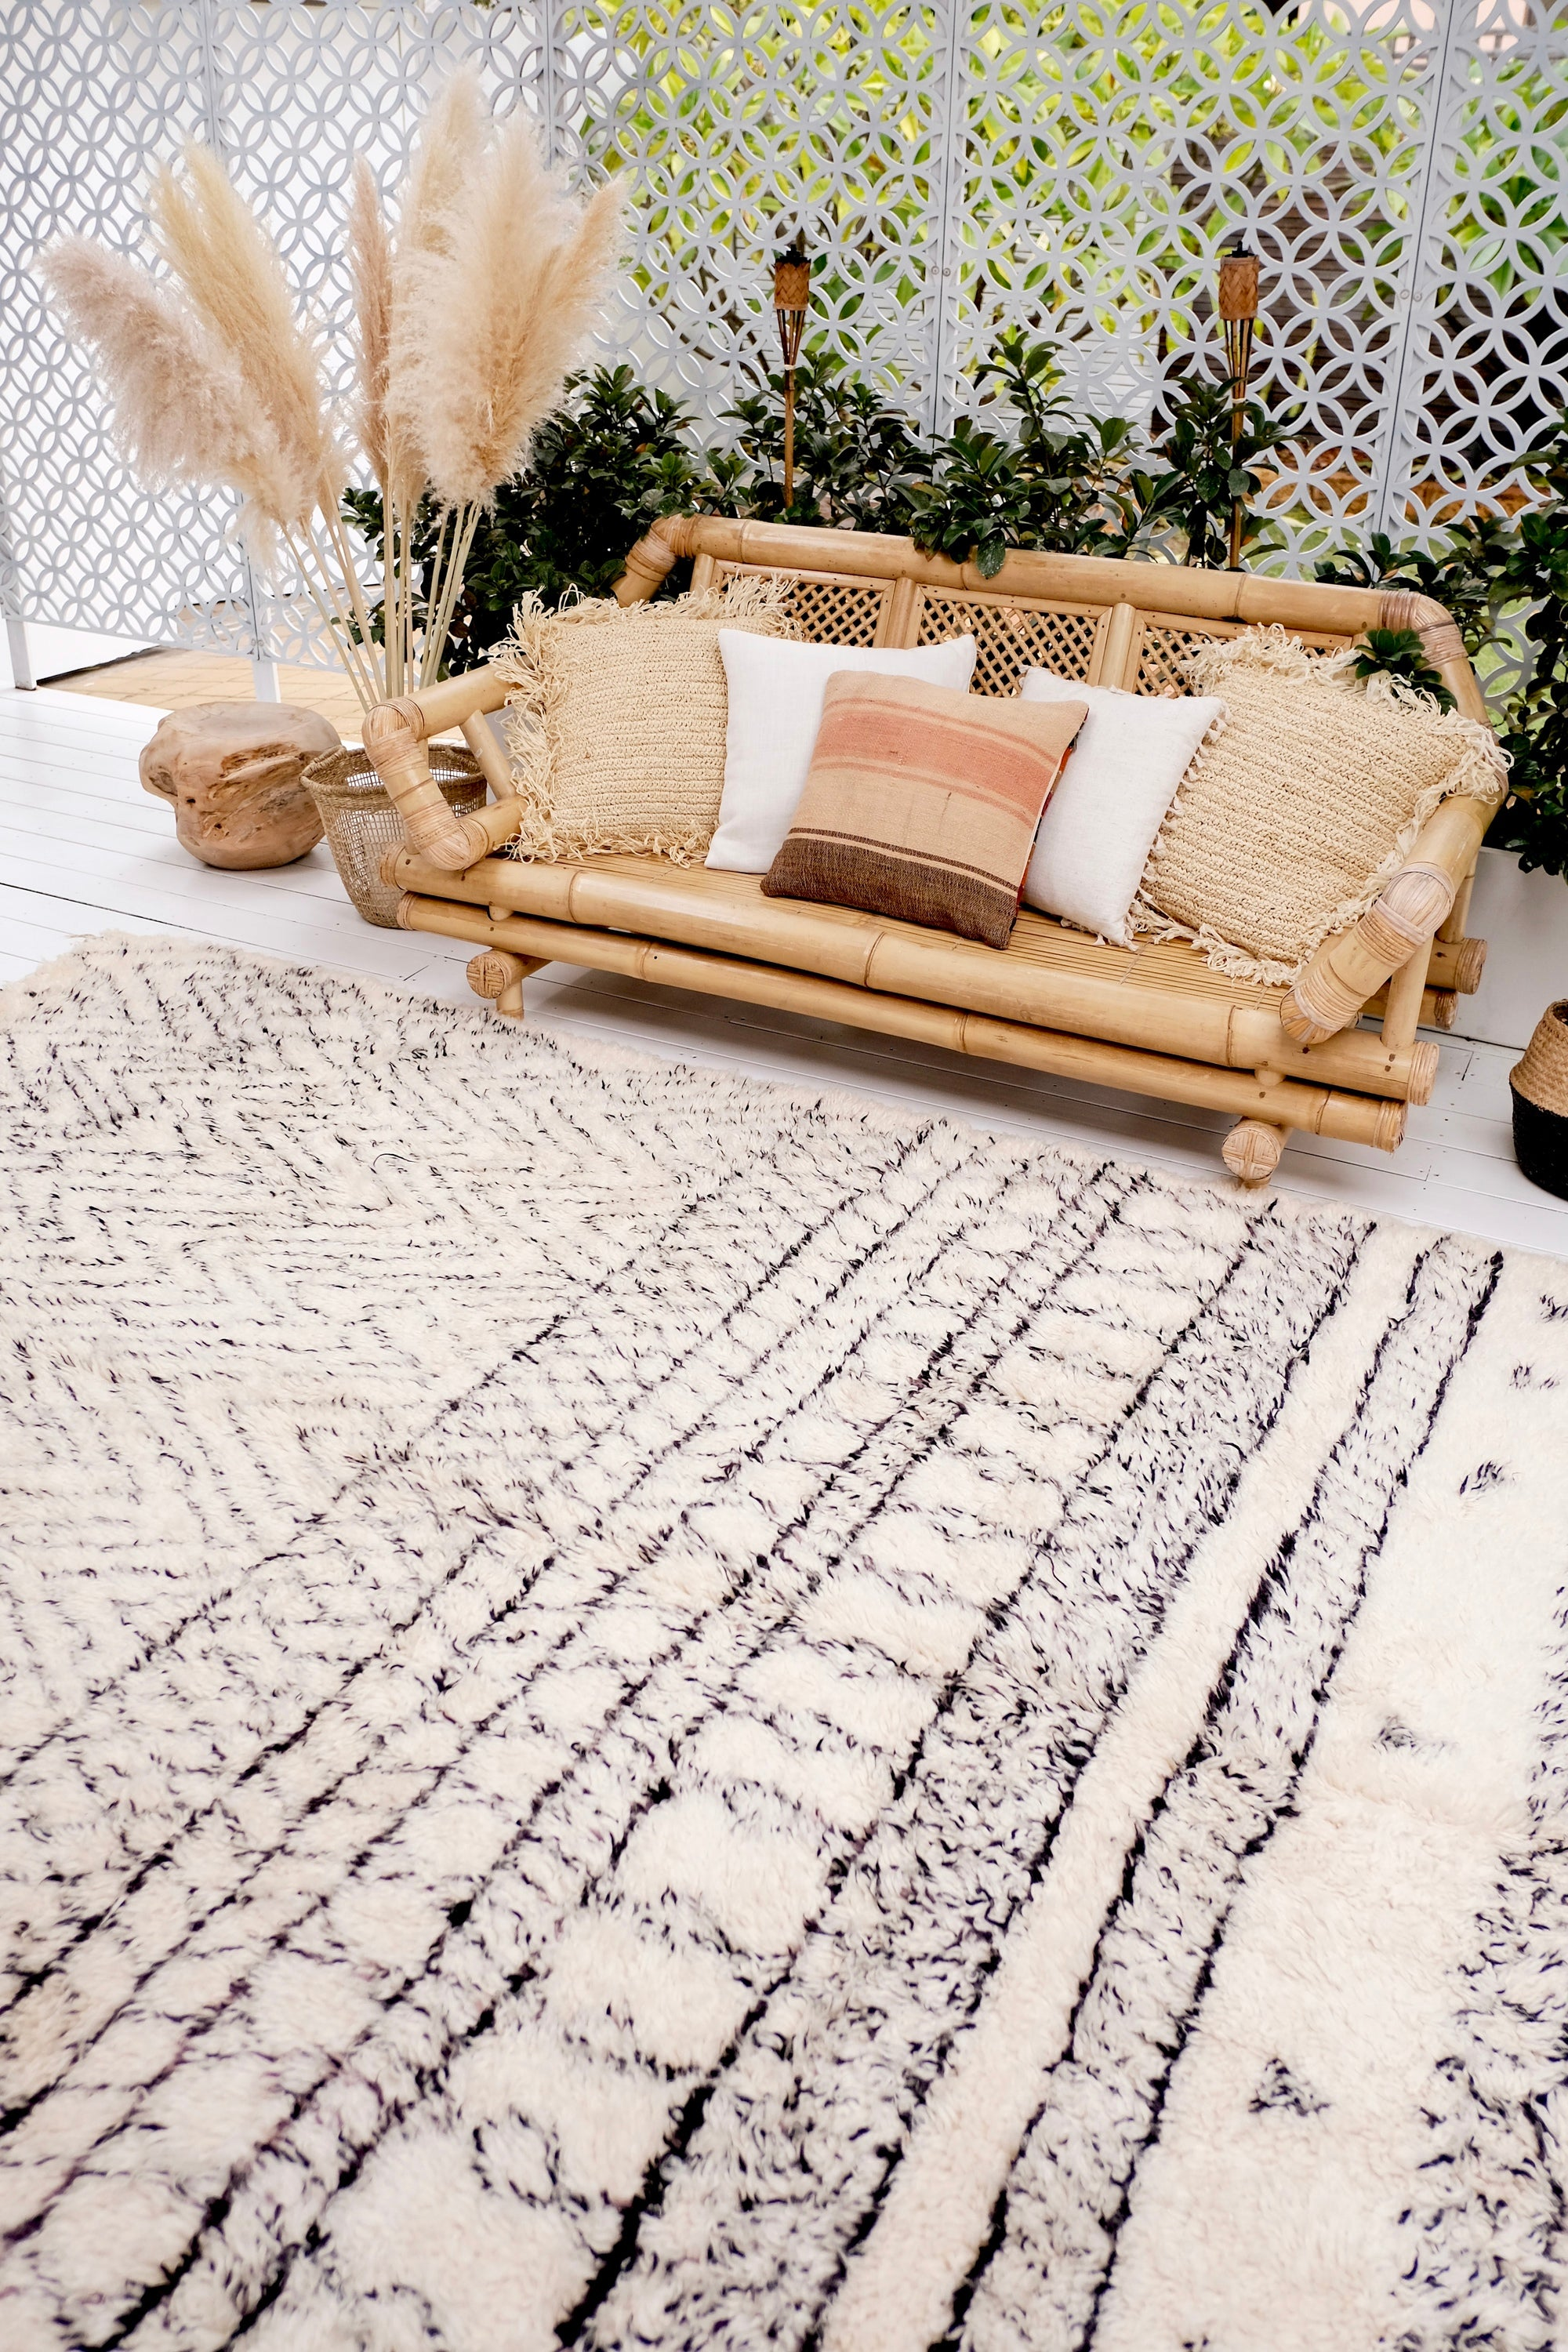 Bara Thick Beni Ourain Ivory Black Vintage Moroccan Wool Rug - Lustere Living